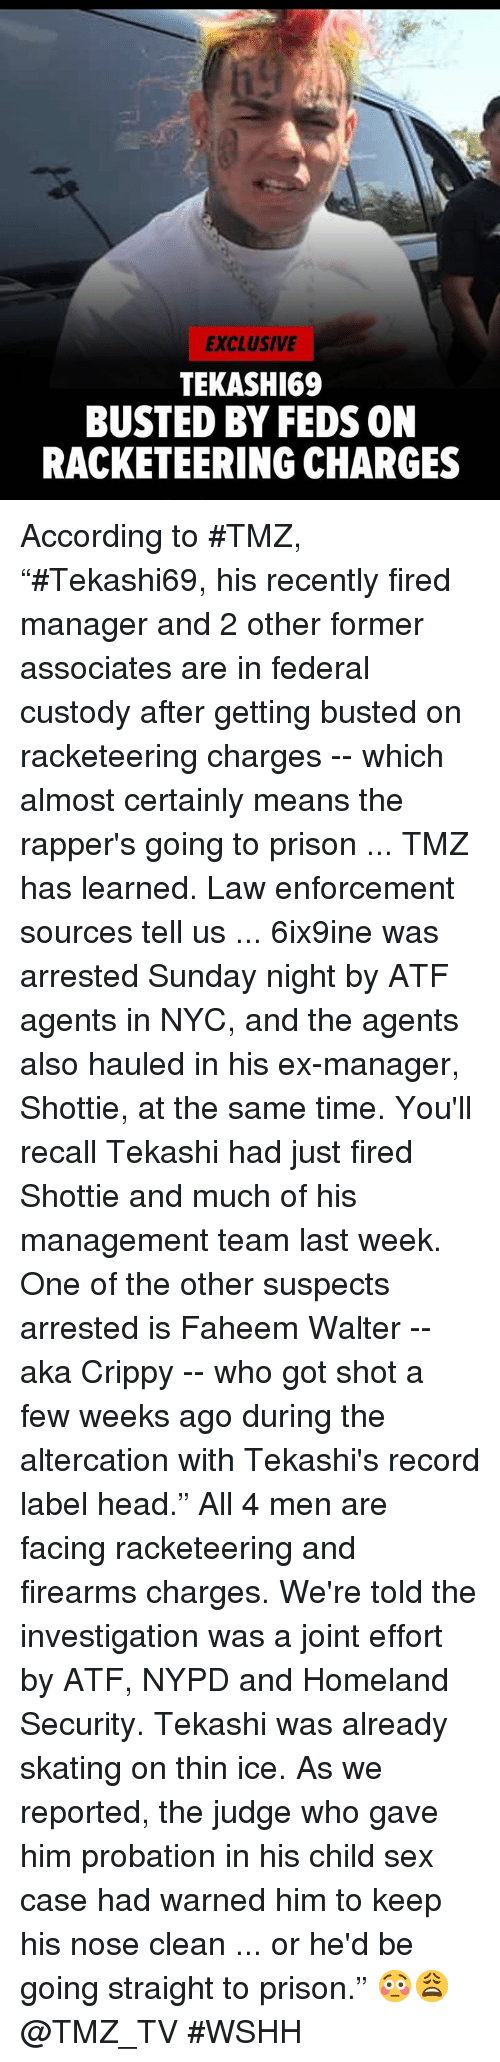 "Nypd: EXCLUSIVE  TEKASHI69  BUSTED BY FEDS ON  RACKETEERING CHARGES According to #TMZ, ""#Tekashi69, his recently fired manager and 2 other former associates are in federal custody after getting busted on racketeering charges -- which almost certainly means the rapper's going to prison ... TMZ has learned.  Law enforcement sources tell us ... 6ix9ine was arrested Sunday night by ATF agents in NYC, and the agents also hauled in his ex-manager, Shottie, at the same time. You'll recall Tekashi had just fired Shottie and much of his management team last week.  One of the other suspects arrested is Faheem Walter -- aka Crippy -- who got shot a few weeks ago during the altercation with Tekashi's record label head."" All 4 men are facing racketeering and firearms charges. We're told the investigation was a joint effort by ATF, NYPD and Homeland Security.  Tekashi was already skating on thin ice. As we reported, the judge who gave him probation in his child sex case had warned him to keep his nose clean ... or he'd be going straight to prison."" 😳😩 @TMZ_TV #WSHH"